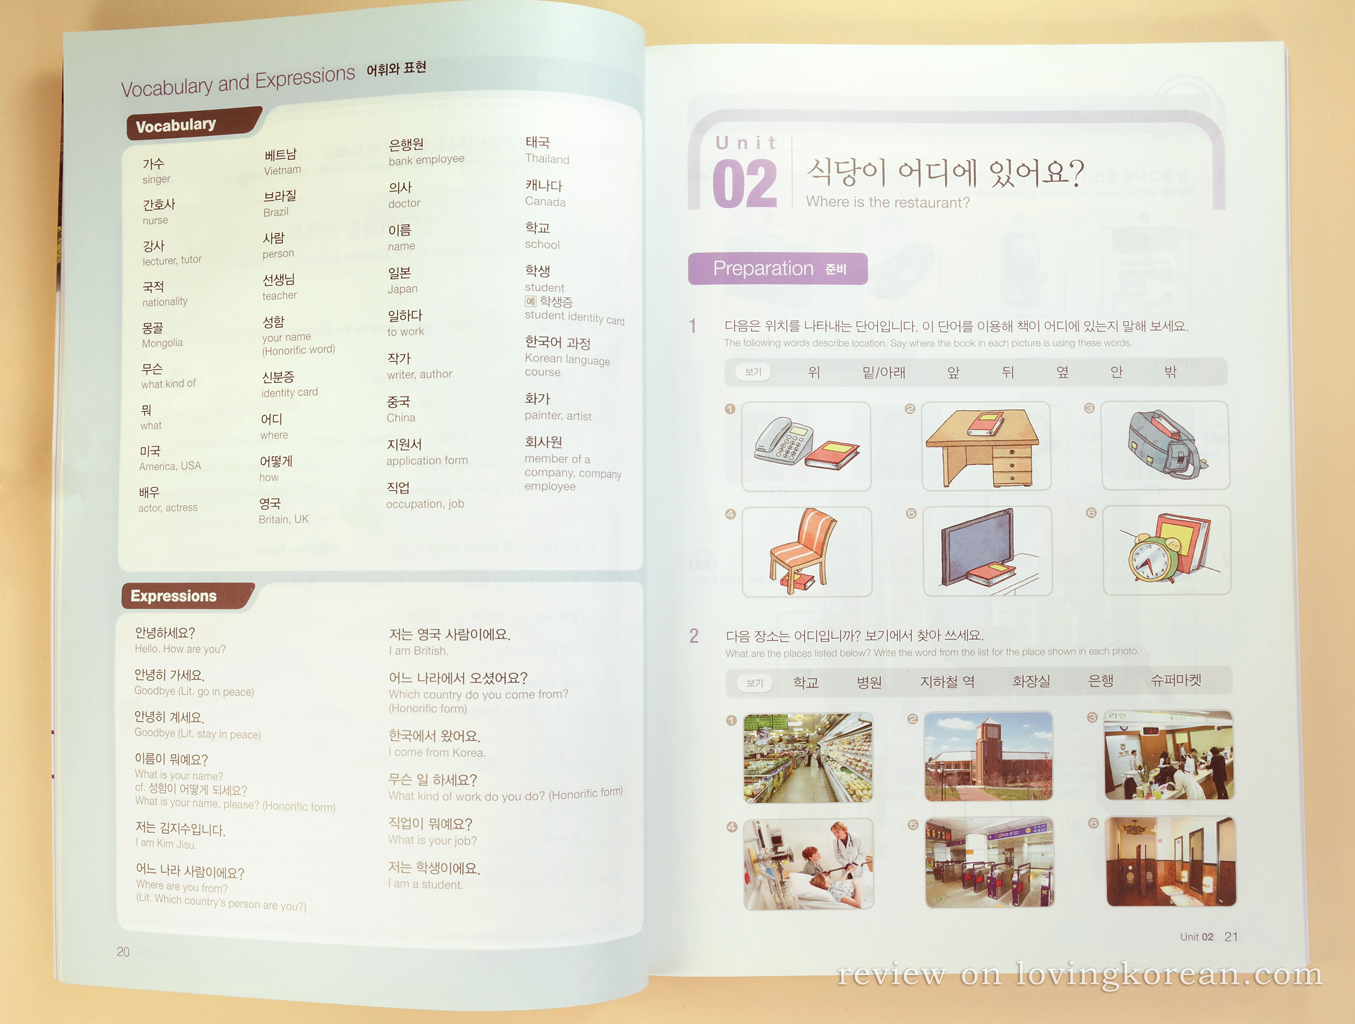 korean-listening-skills-practical-tasks-for-beginners -vocabulary-and-expressions-audio.jpg